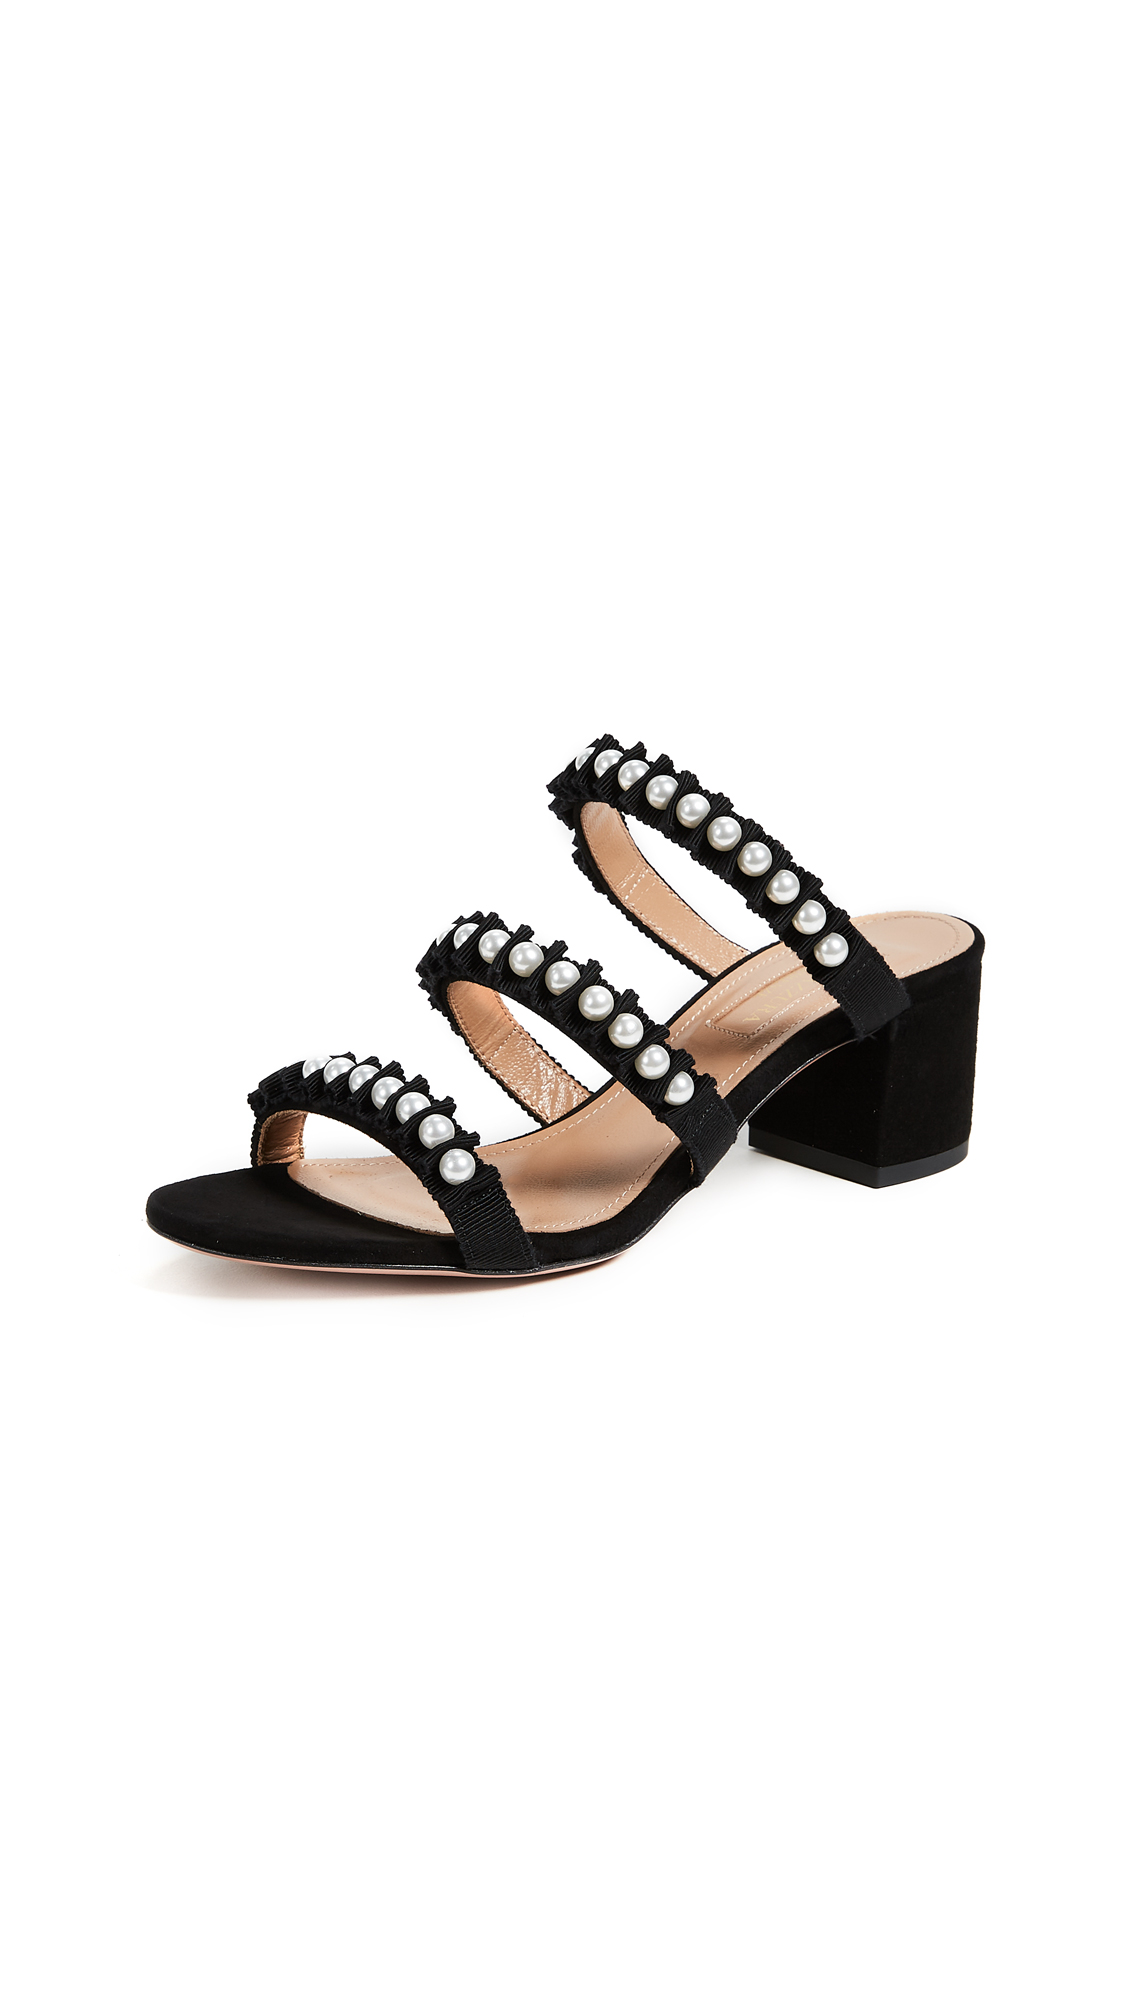 Aquazzura Love Story Sandals - Black